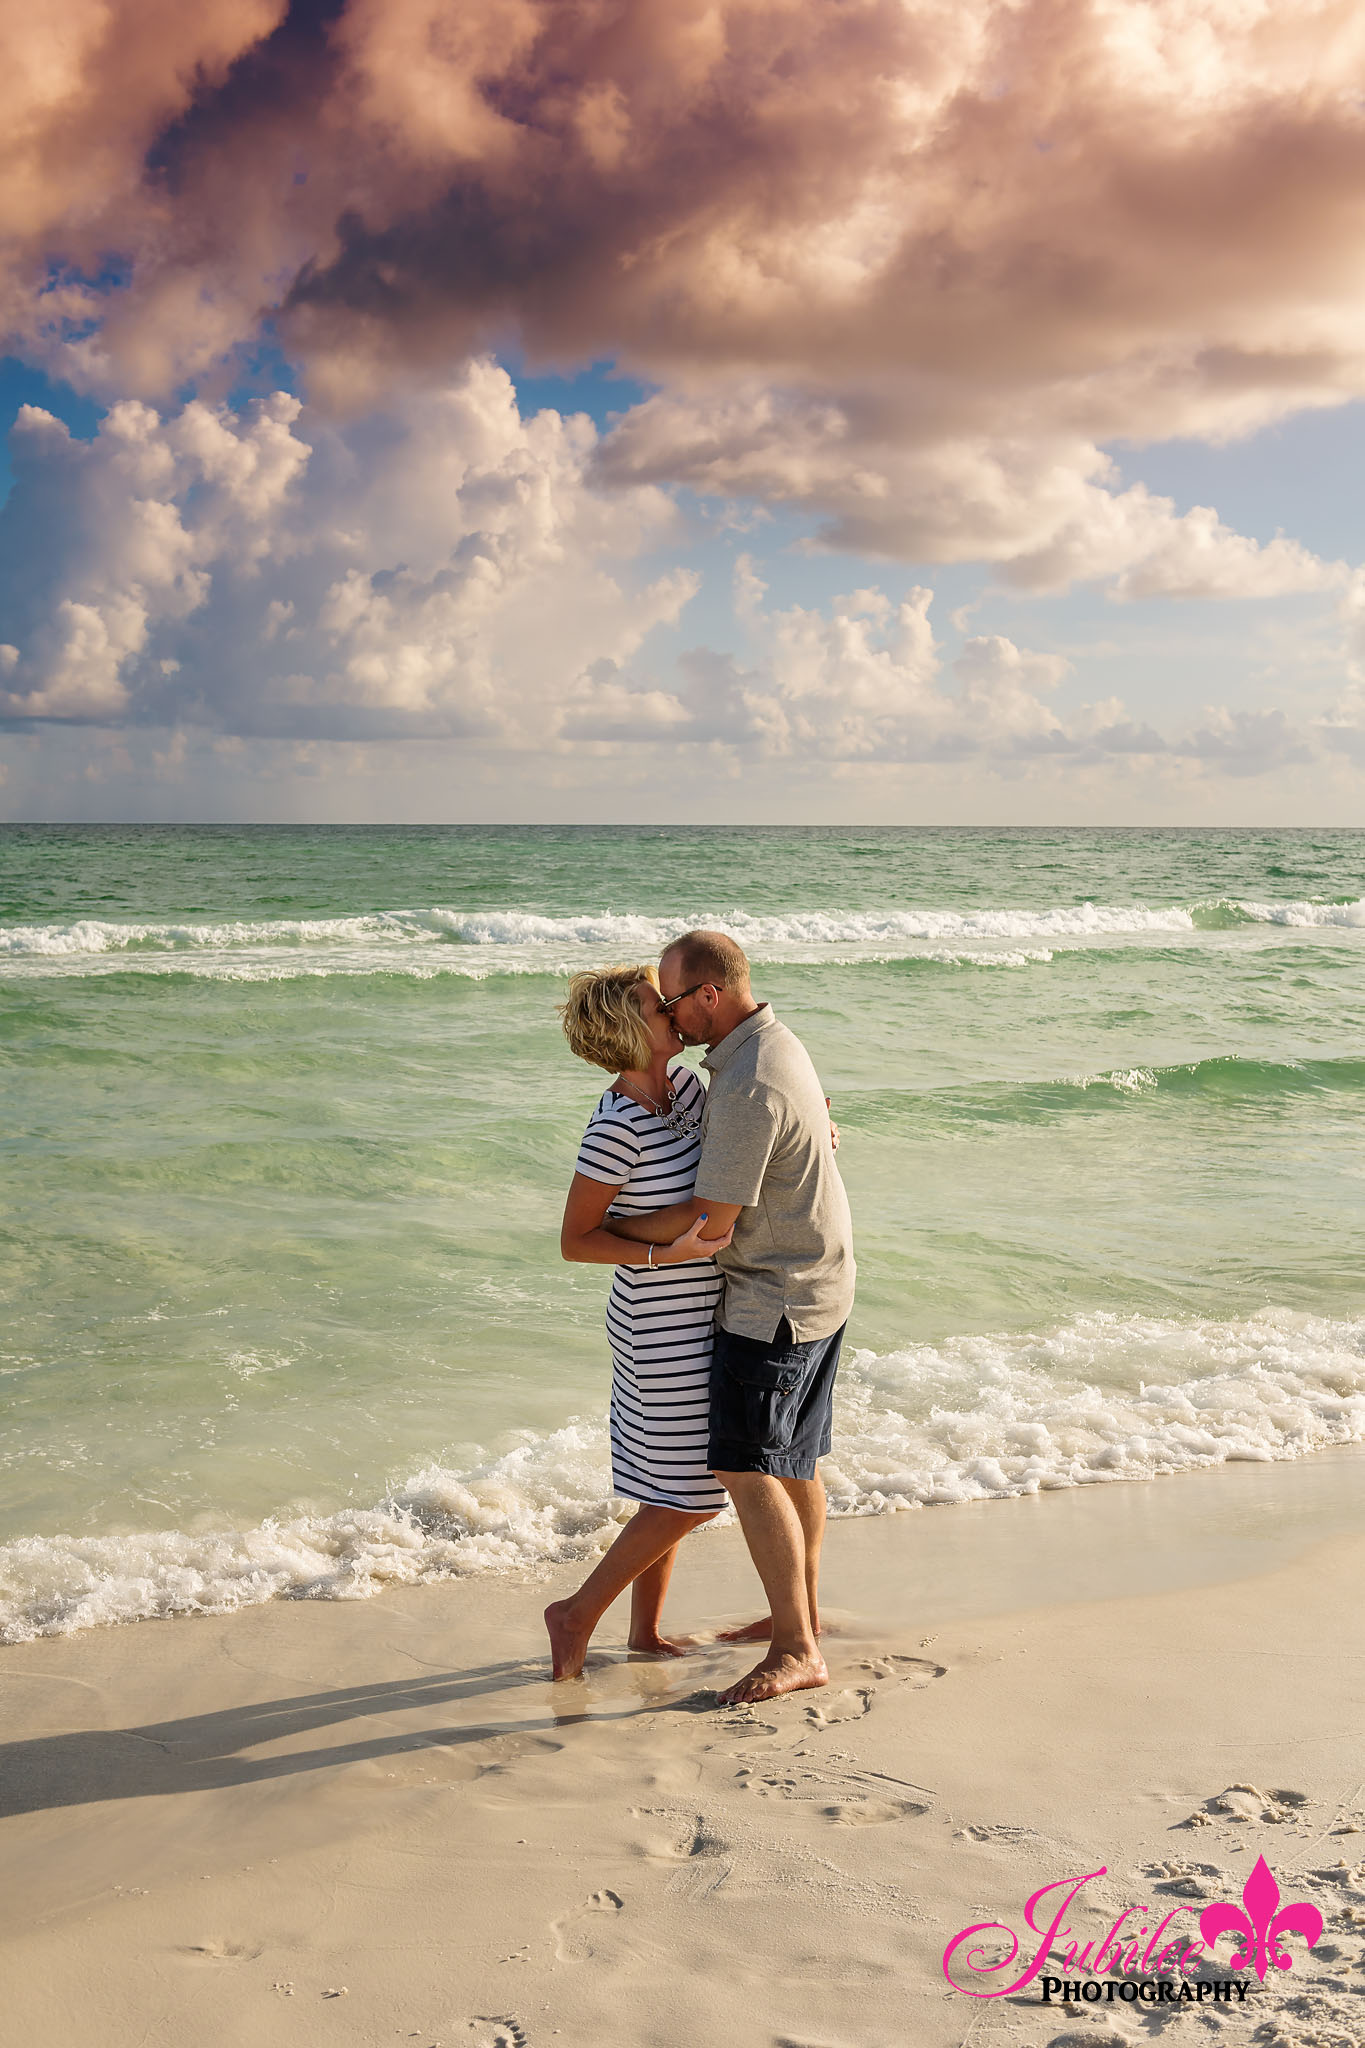 Destin_Photographer_8177